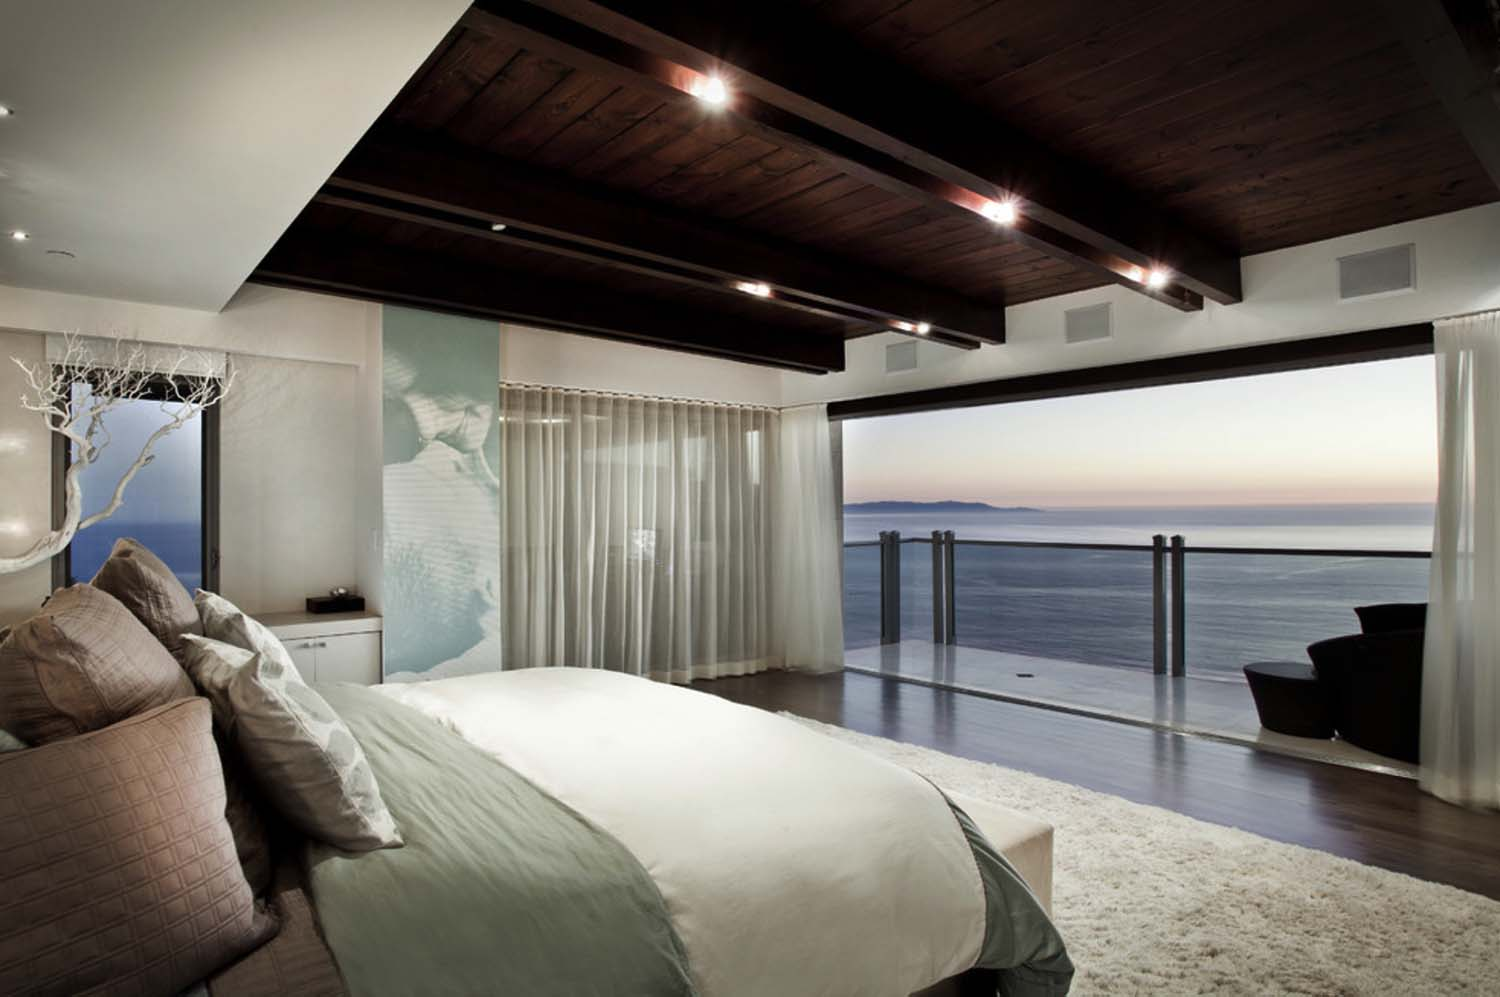 Bedroom With Ocean Views-16-1 Kindesign